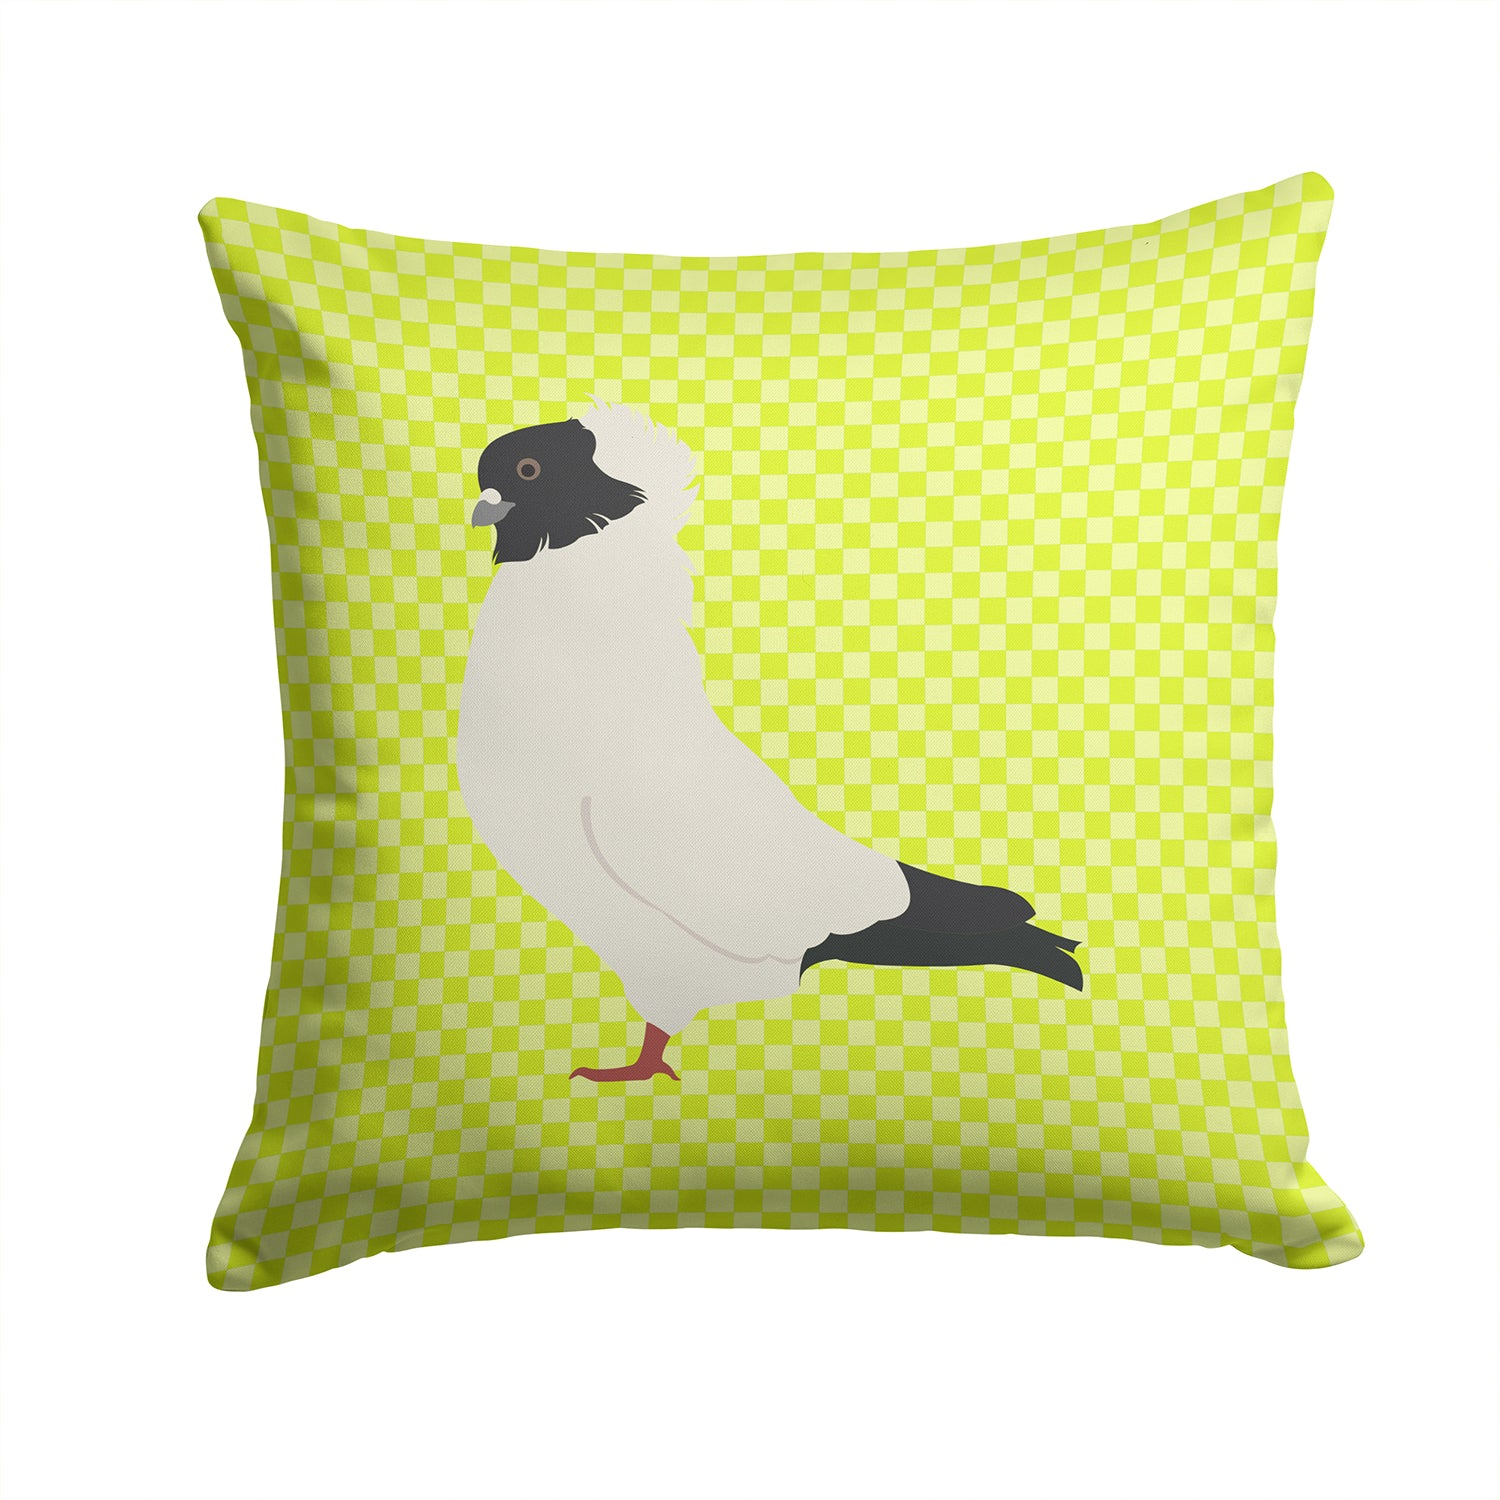 Nun Pigeon Green Fabric Decorative Pillow BB7778PW1414 by Caroline's Treasures